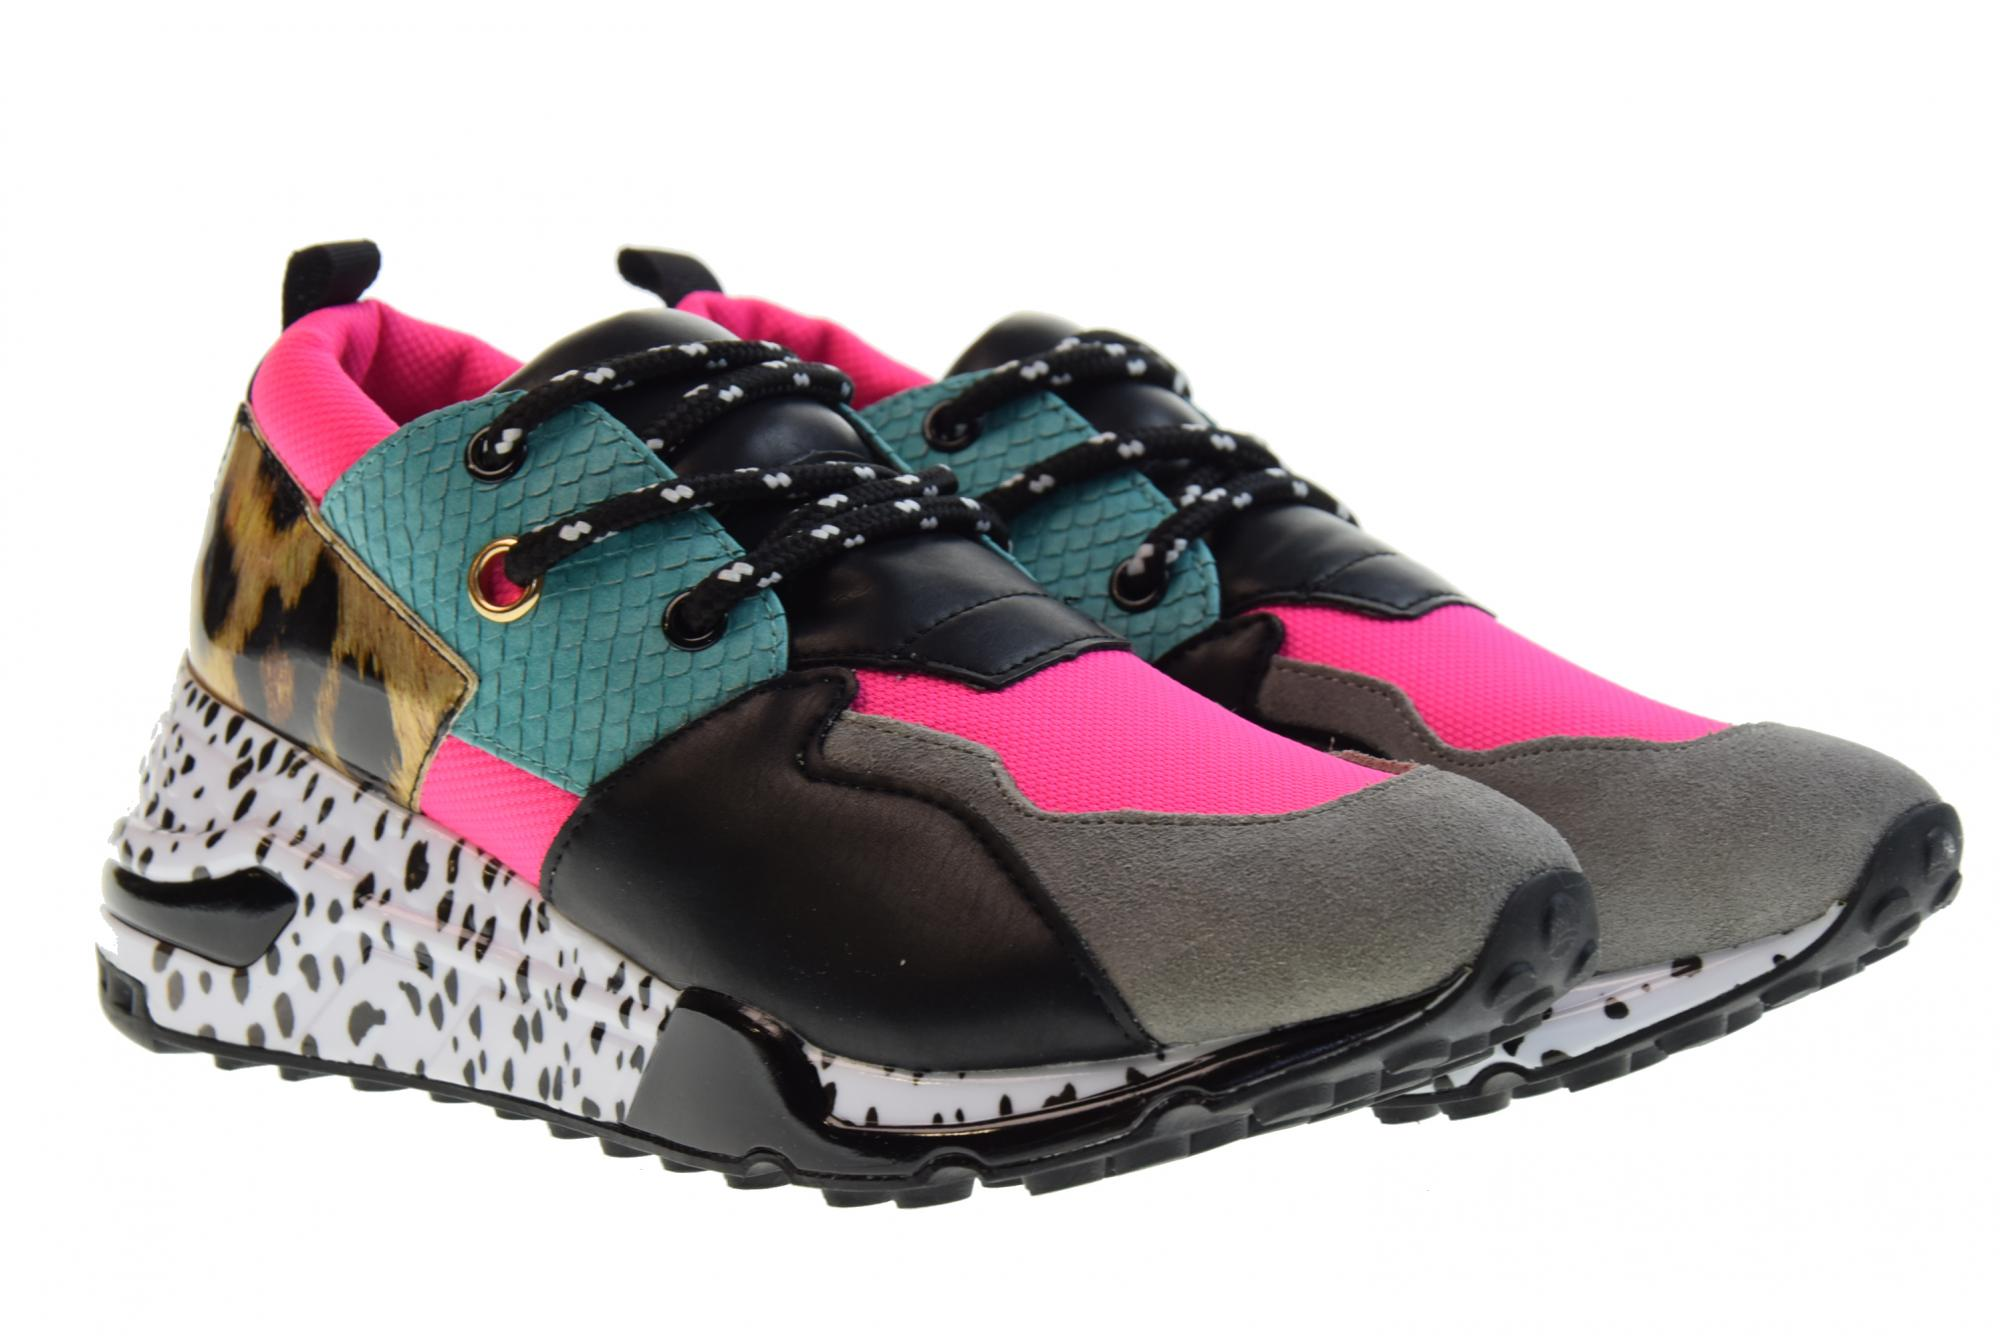 65906f44889 Details about Steve Madden P19u shoes woman sneakers CLIFF BRIGHT MULTI